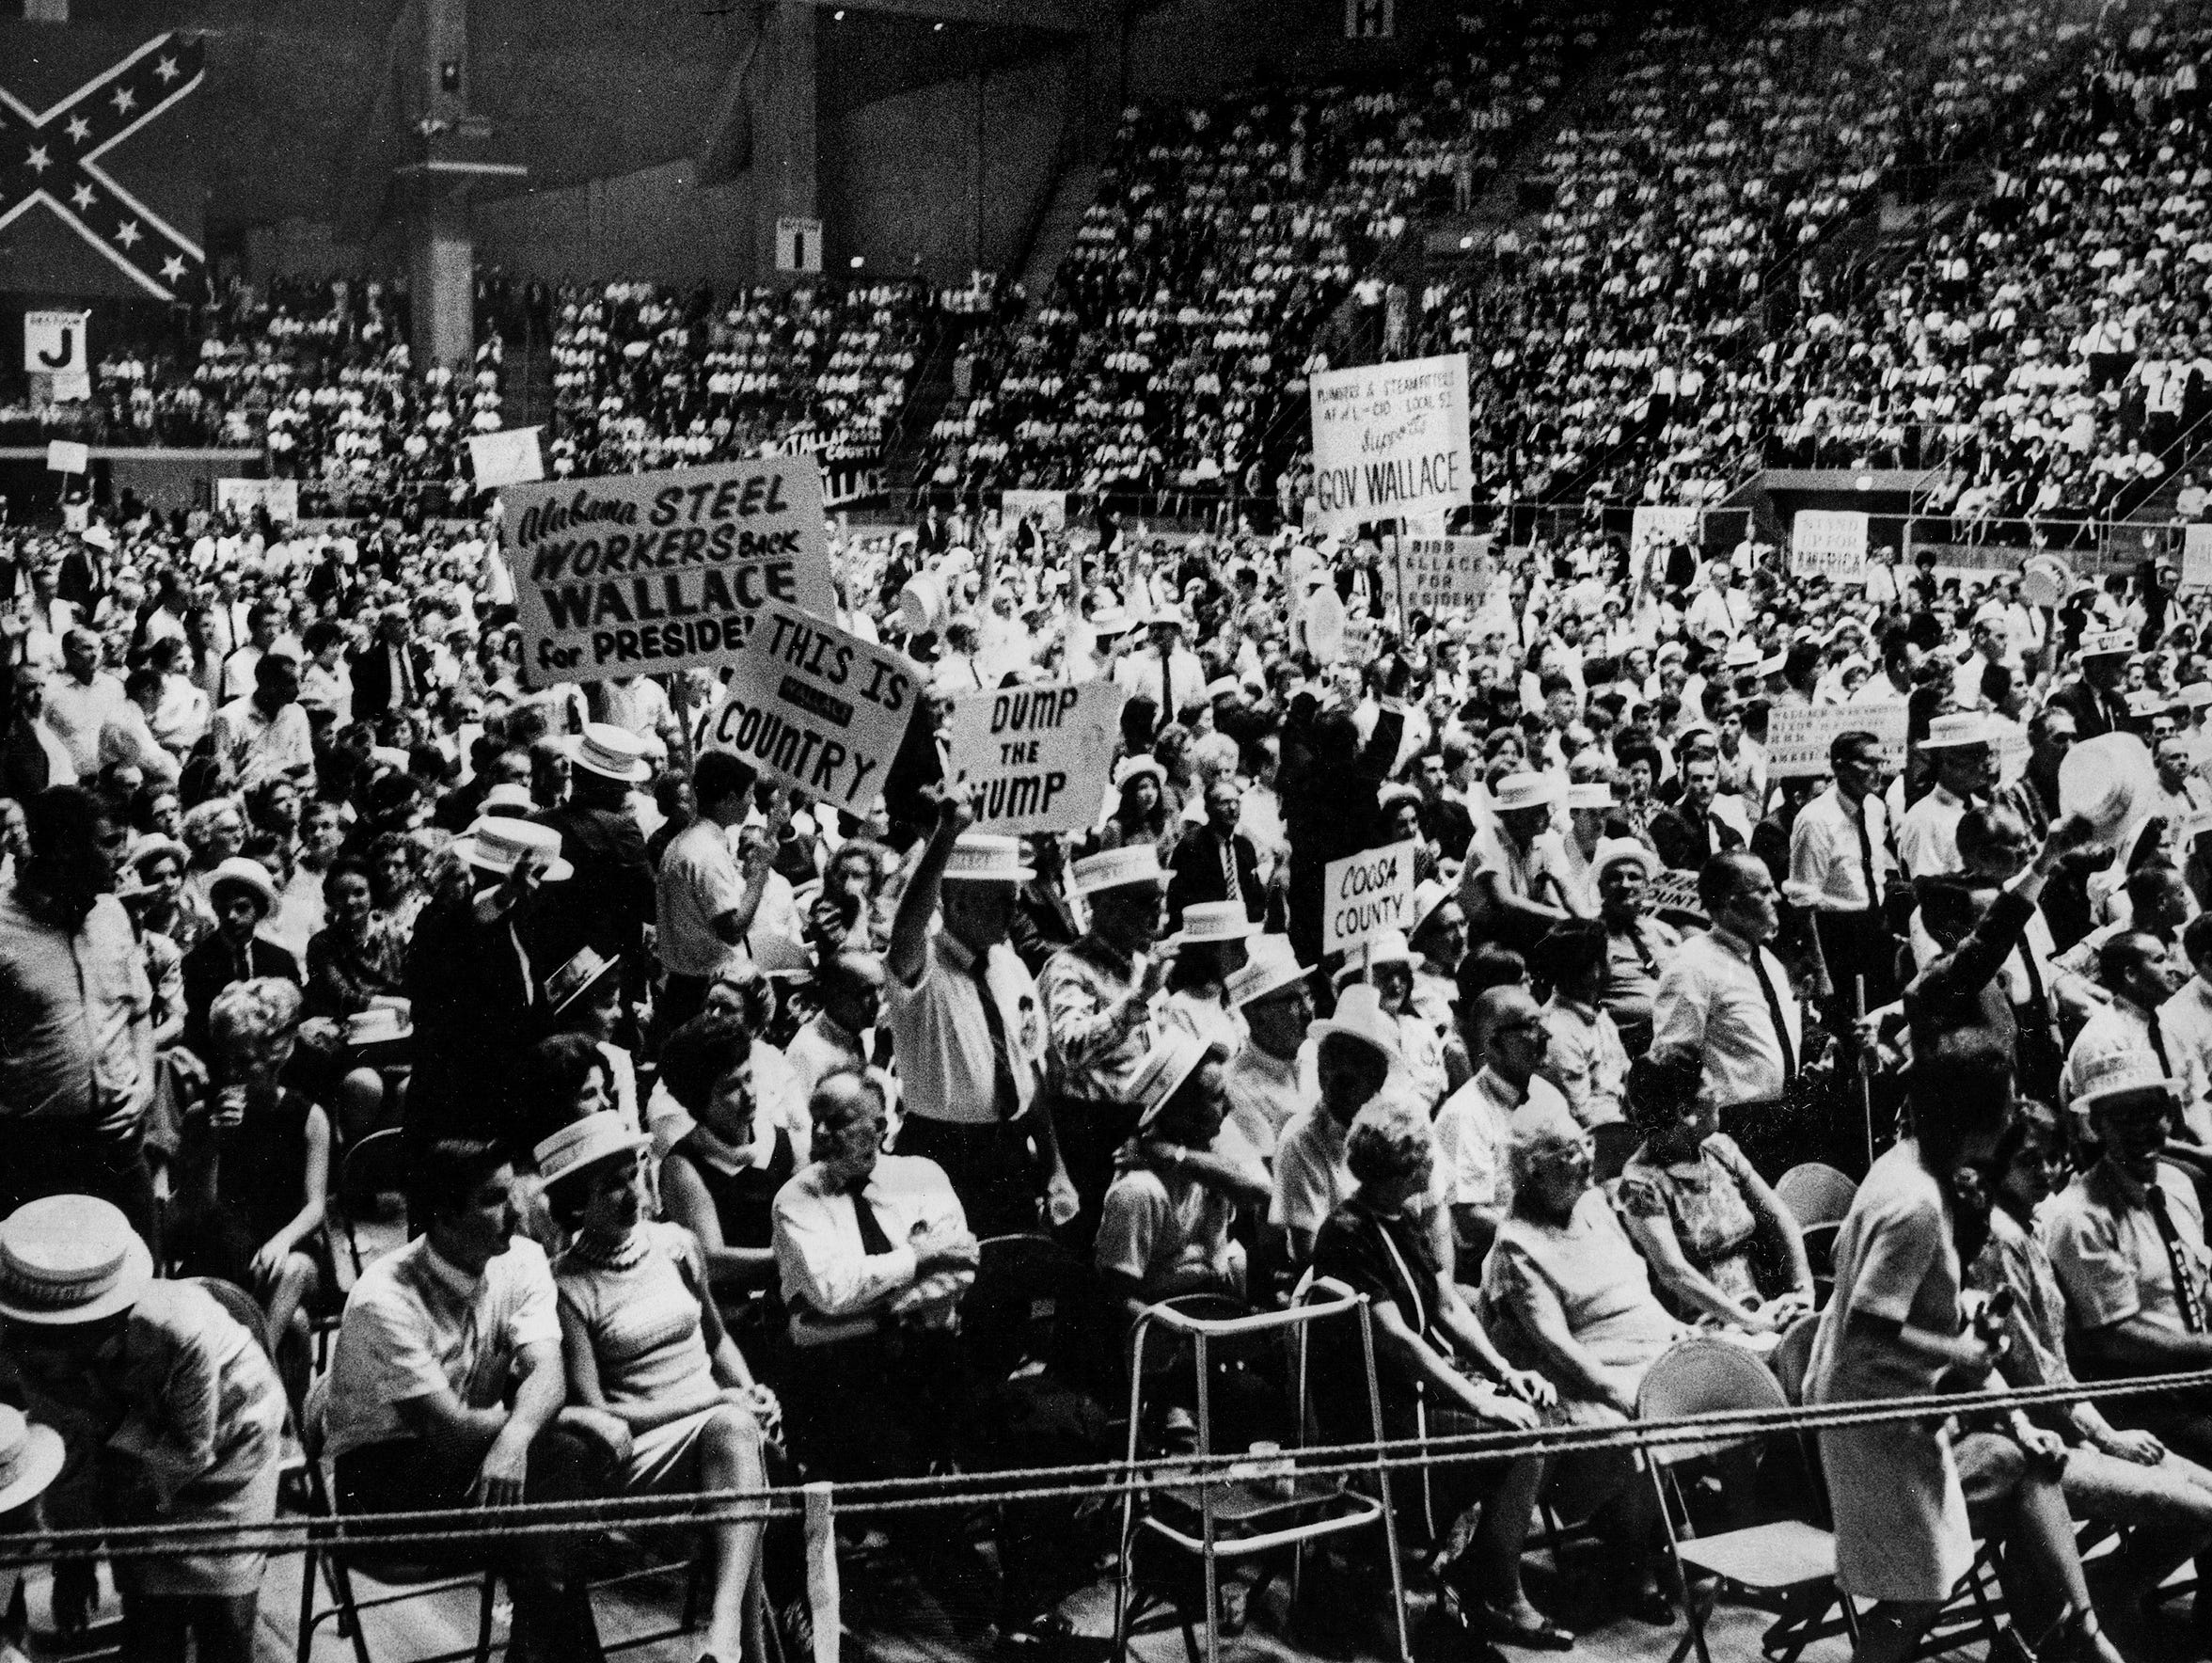 A rally for presidential candidate George Wallace at